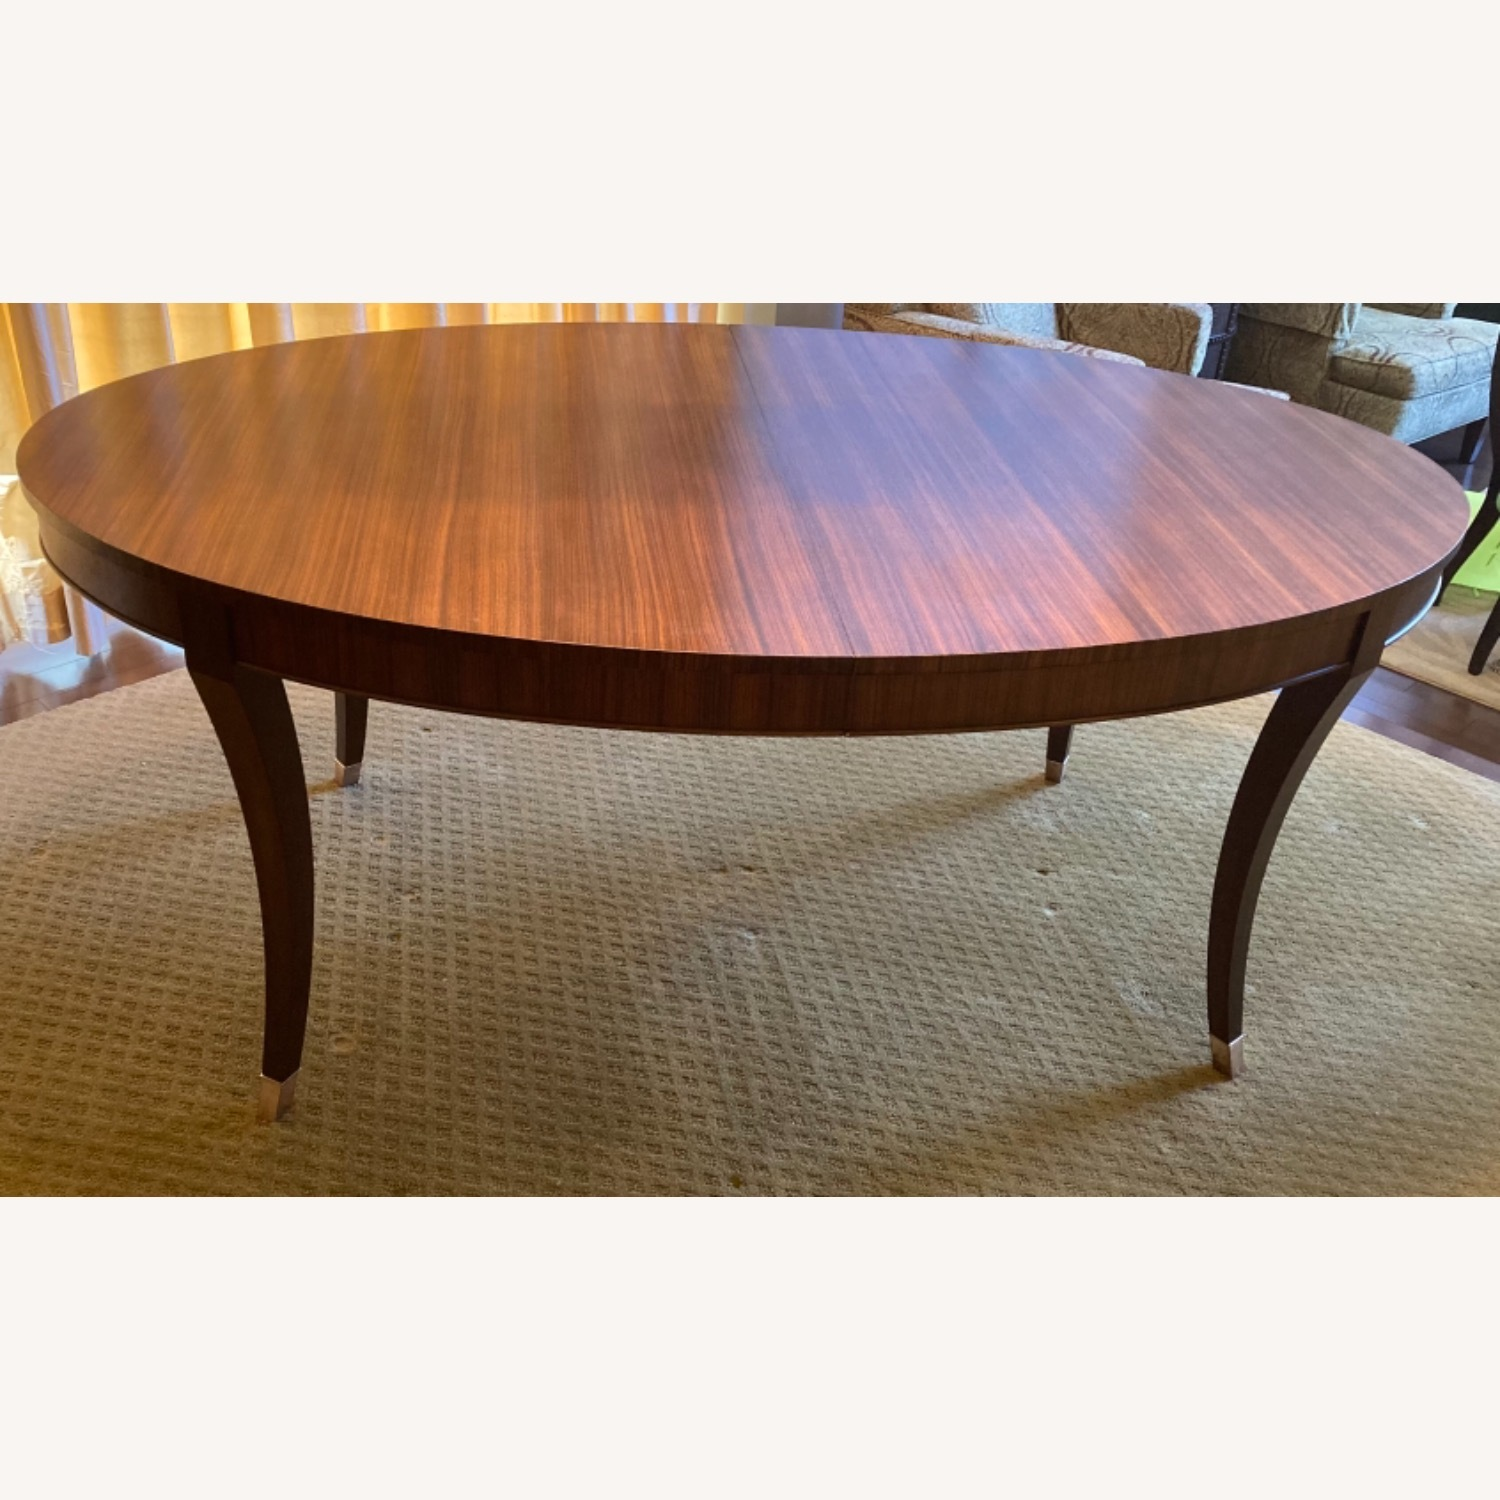 Oval Dining Table and 4 Chairs - image-2